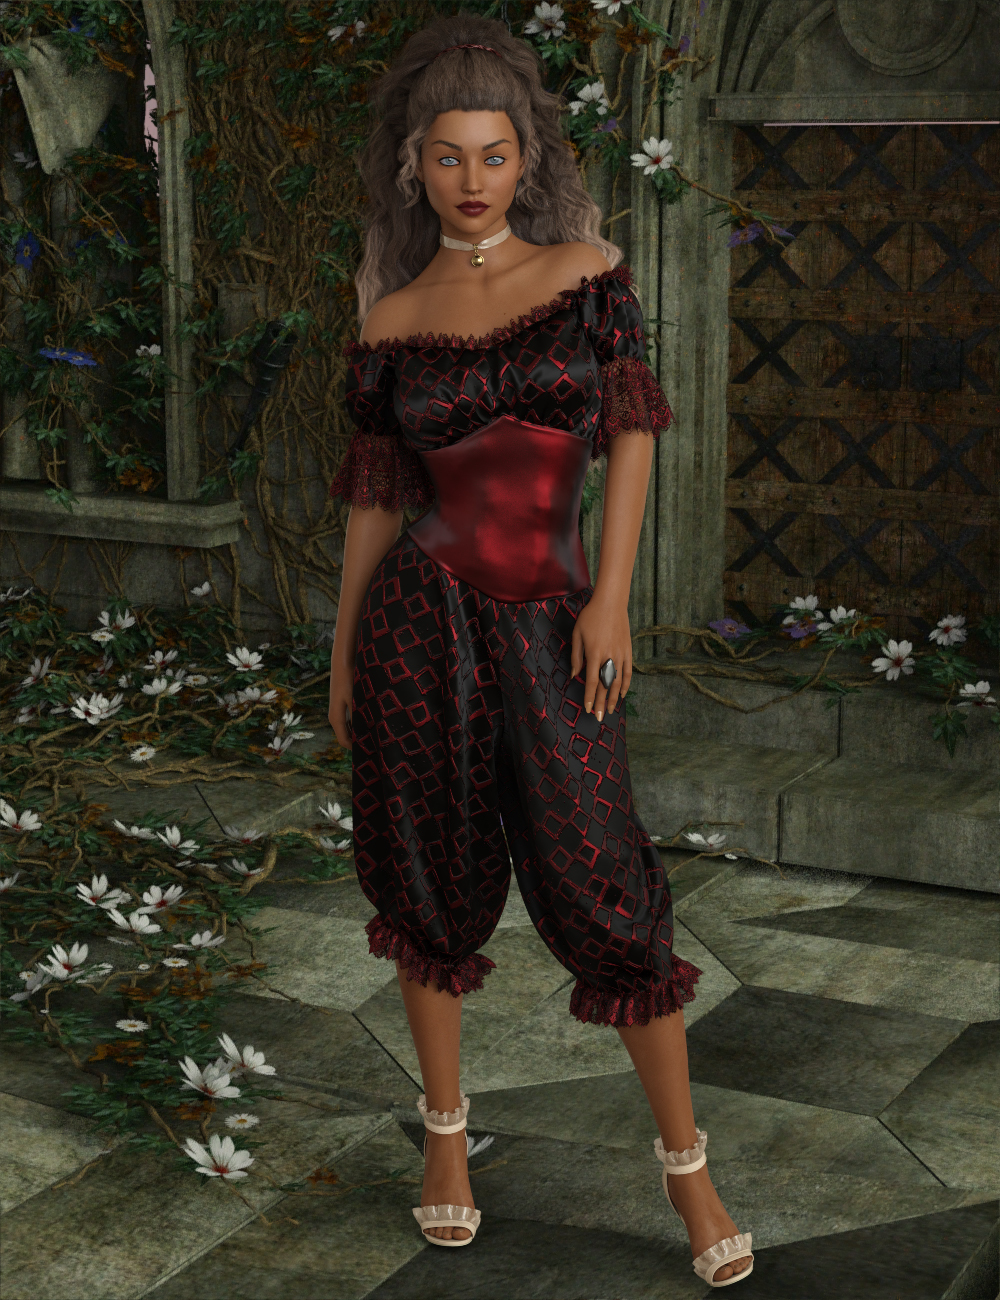 InStyle - dForce - Victorian Mistress for G8F by -Valkyrie-